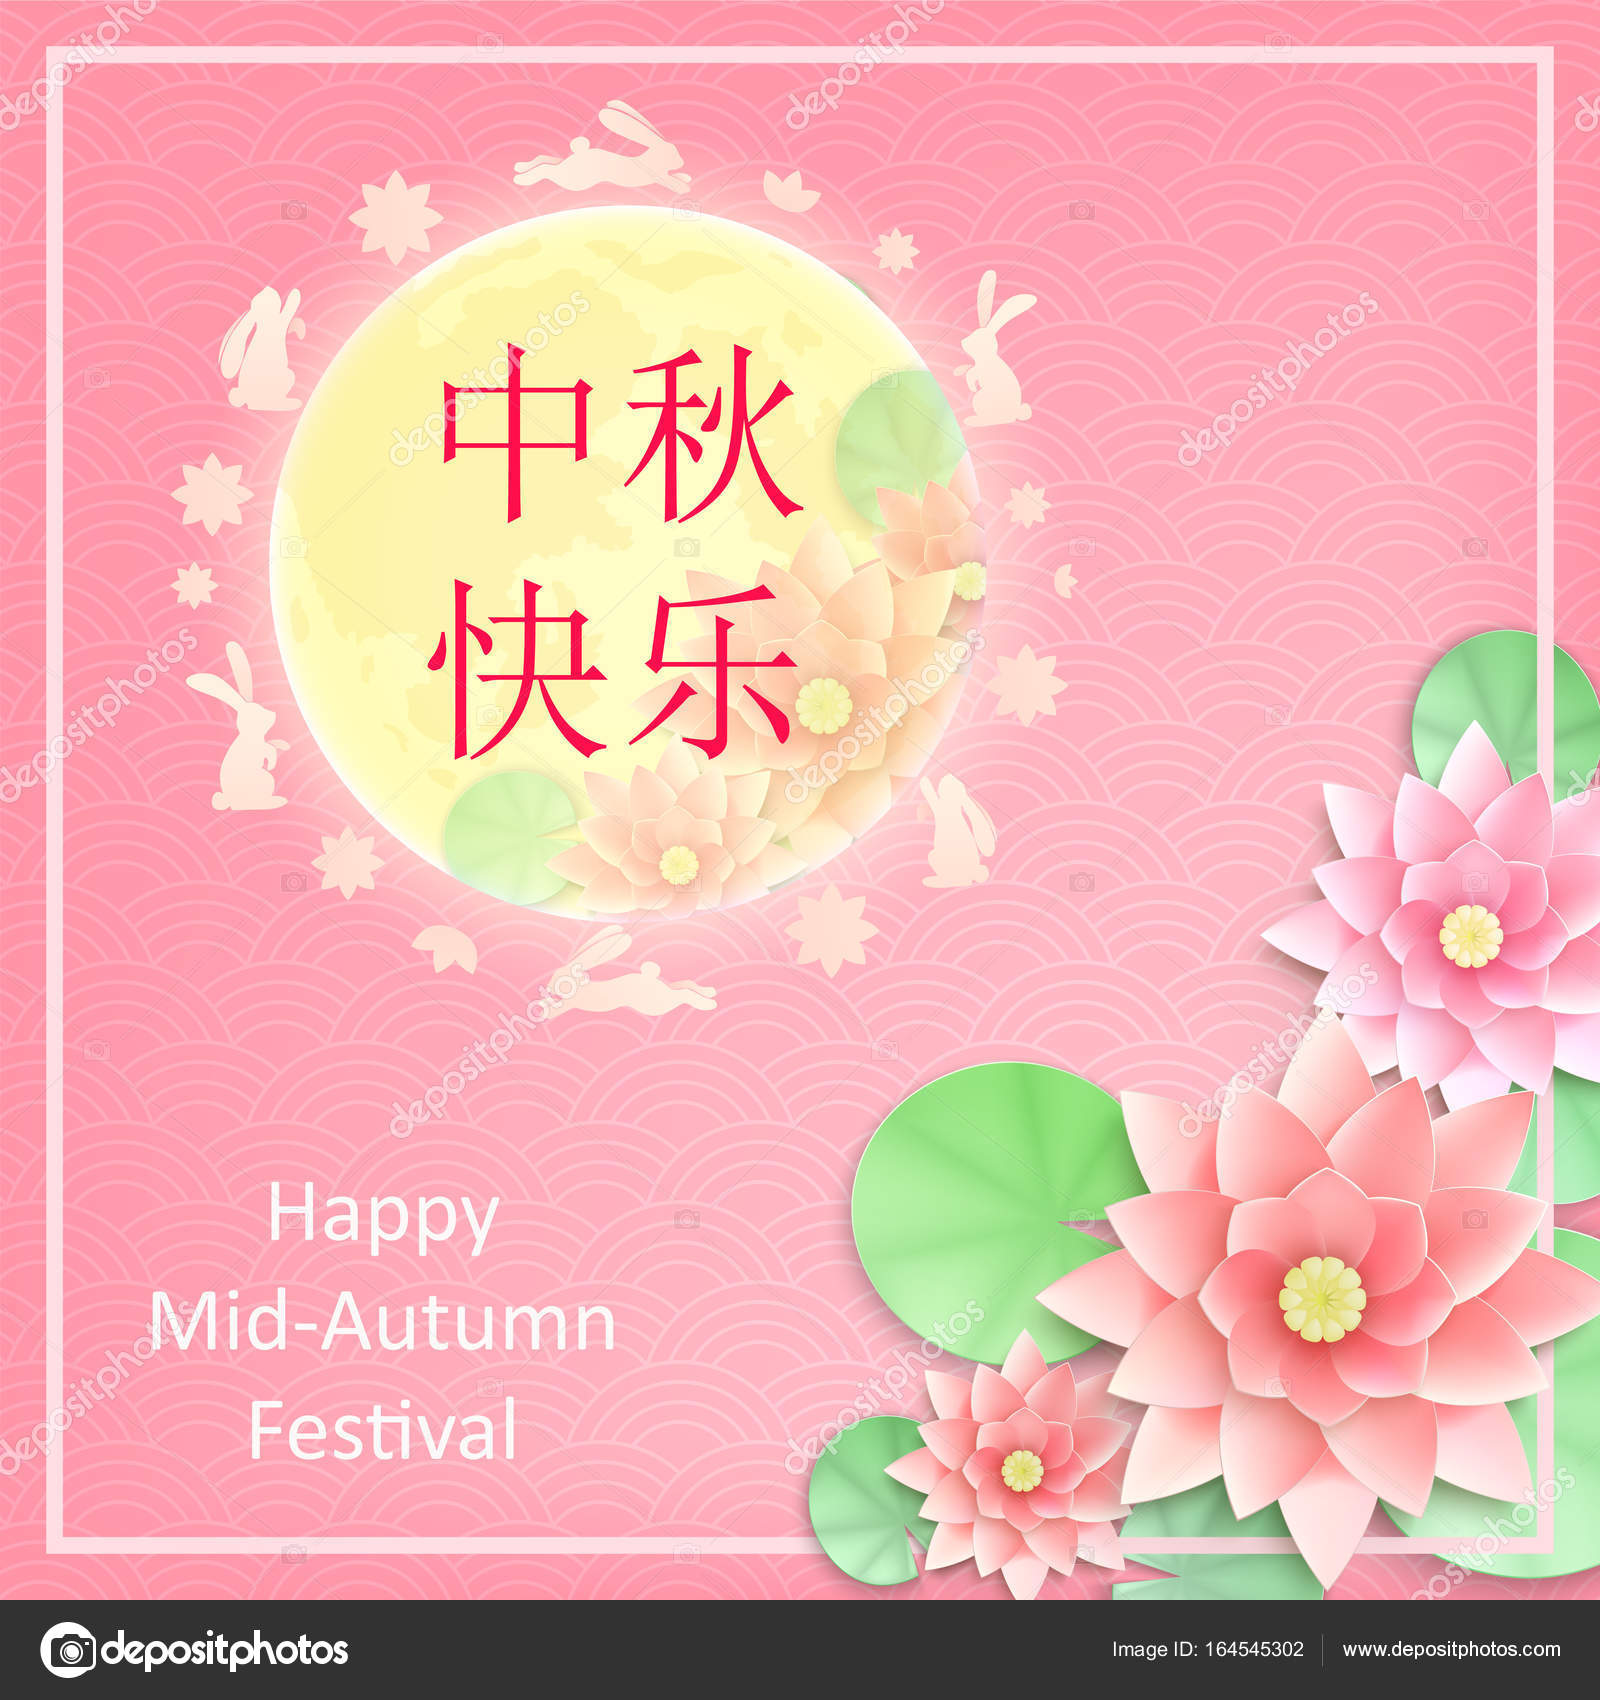 Chinese mid autumn festival stock vector artabramoa 164545302 chinese mid autumn festival greeting card with moon rabbit and flowers chinese hieroglyphs are translated happy mid autumn festival vector by m4hsunfo